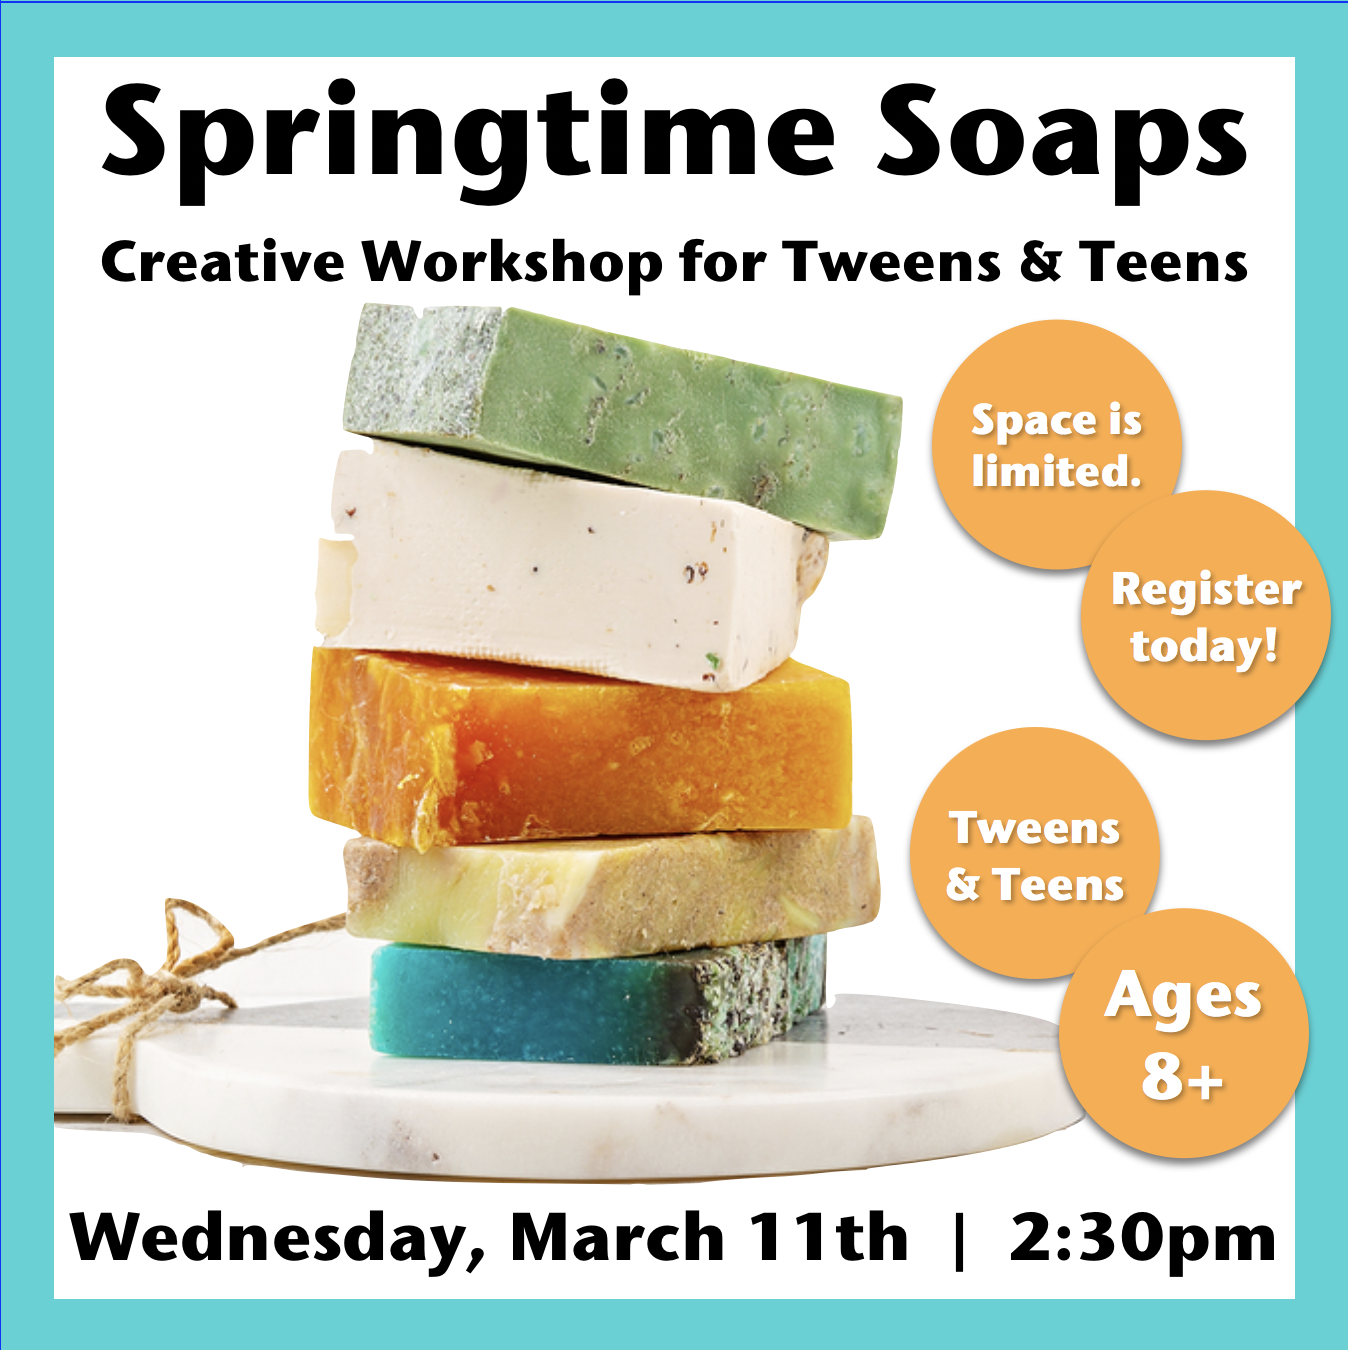 Springtime Soaps for Tweens and Teens